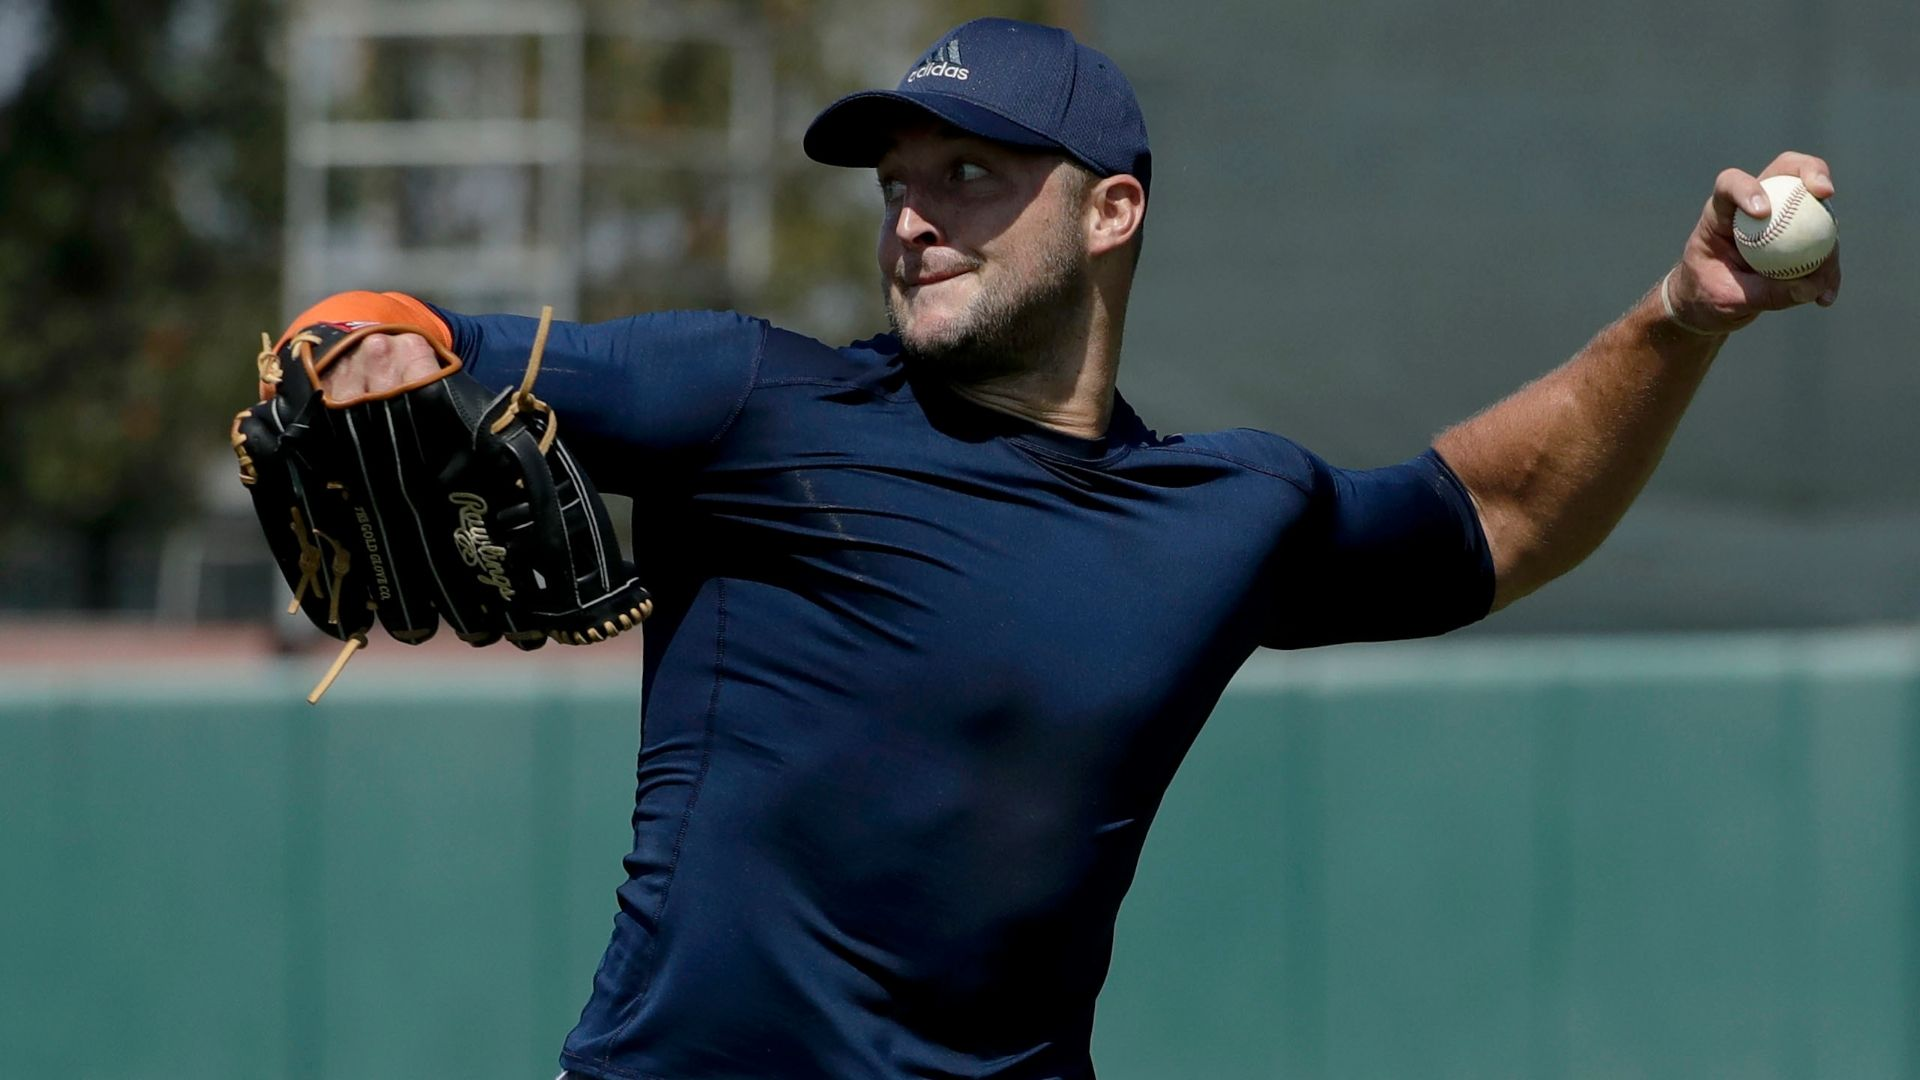 Mets sign Tebow to minor league deal